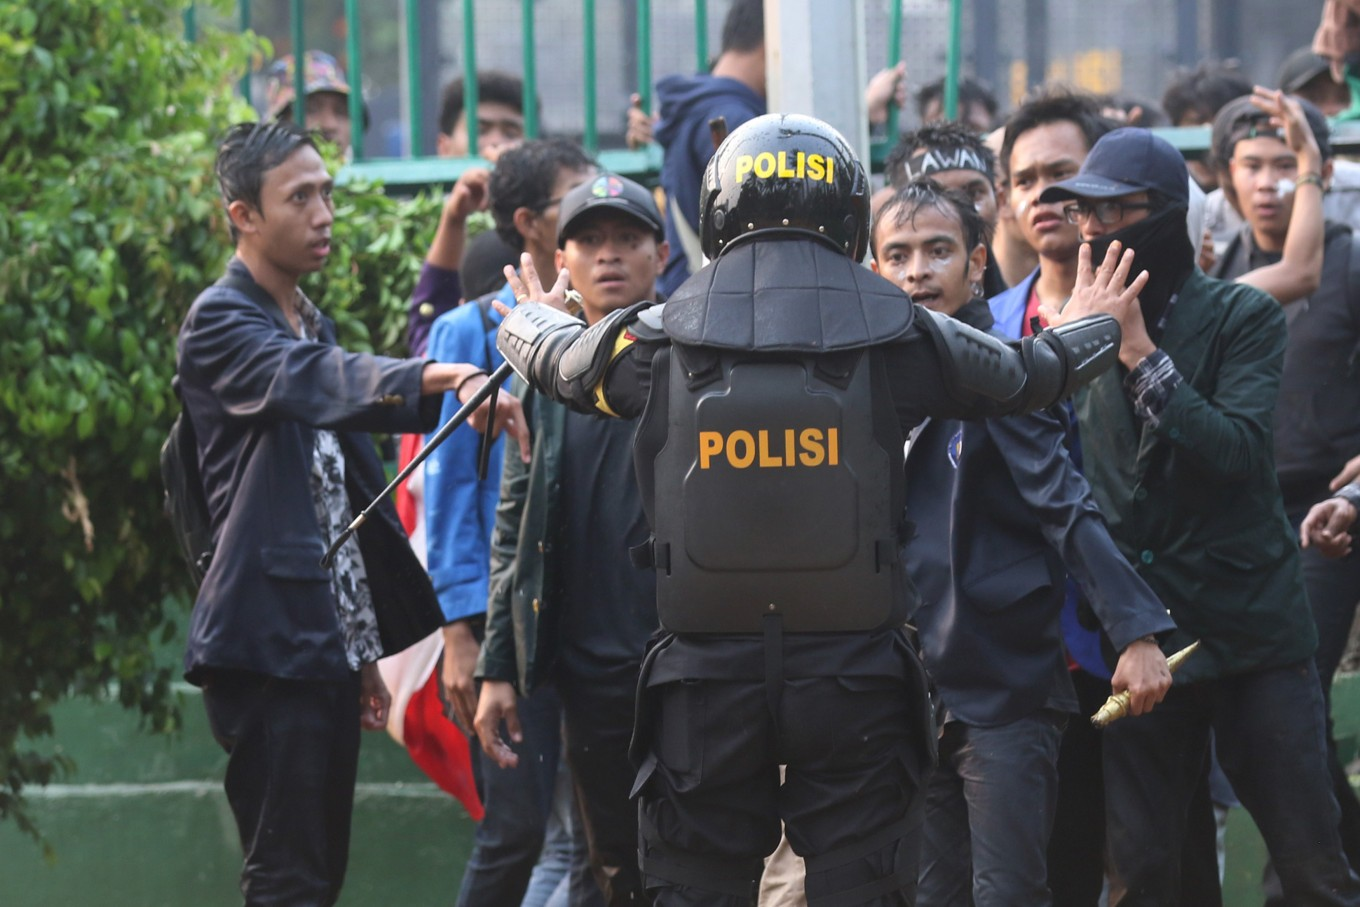 Officers equipped with guns during deadly student protest in Kendari facedisciplinary actions